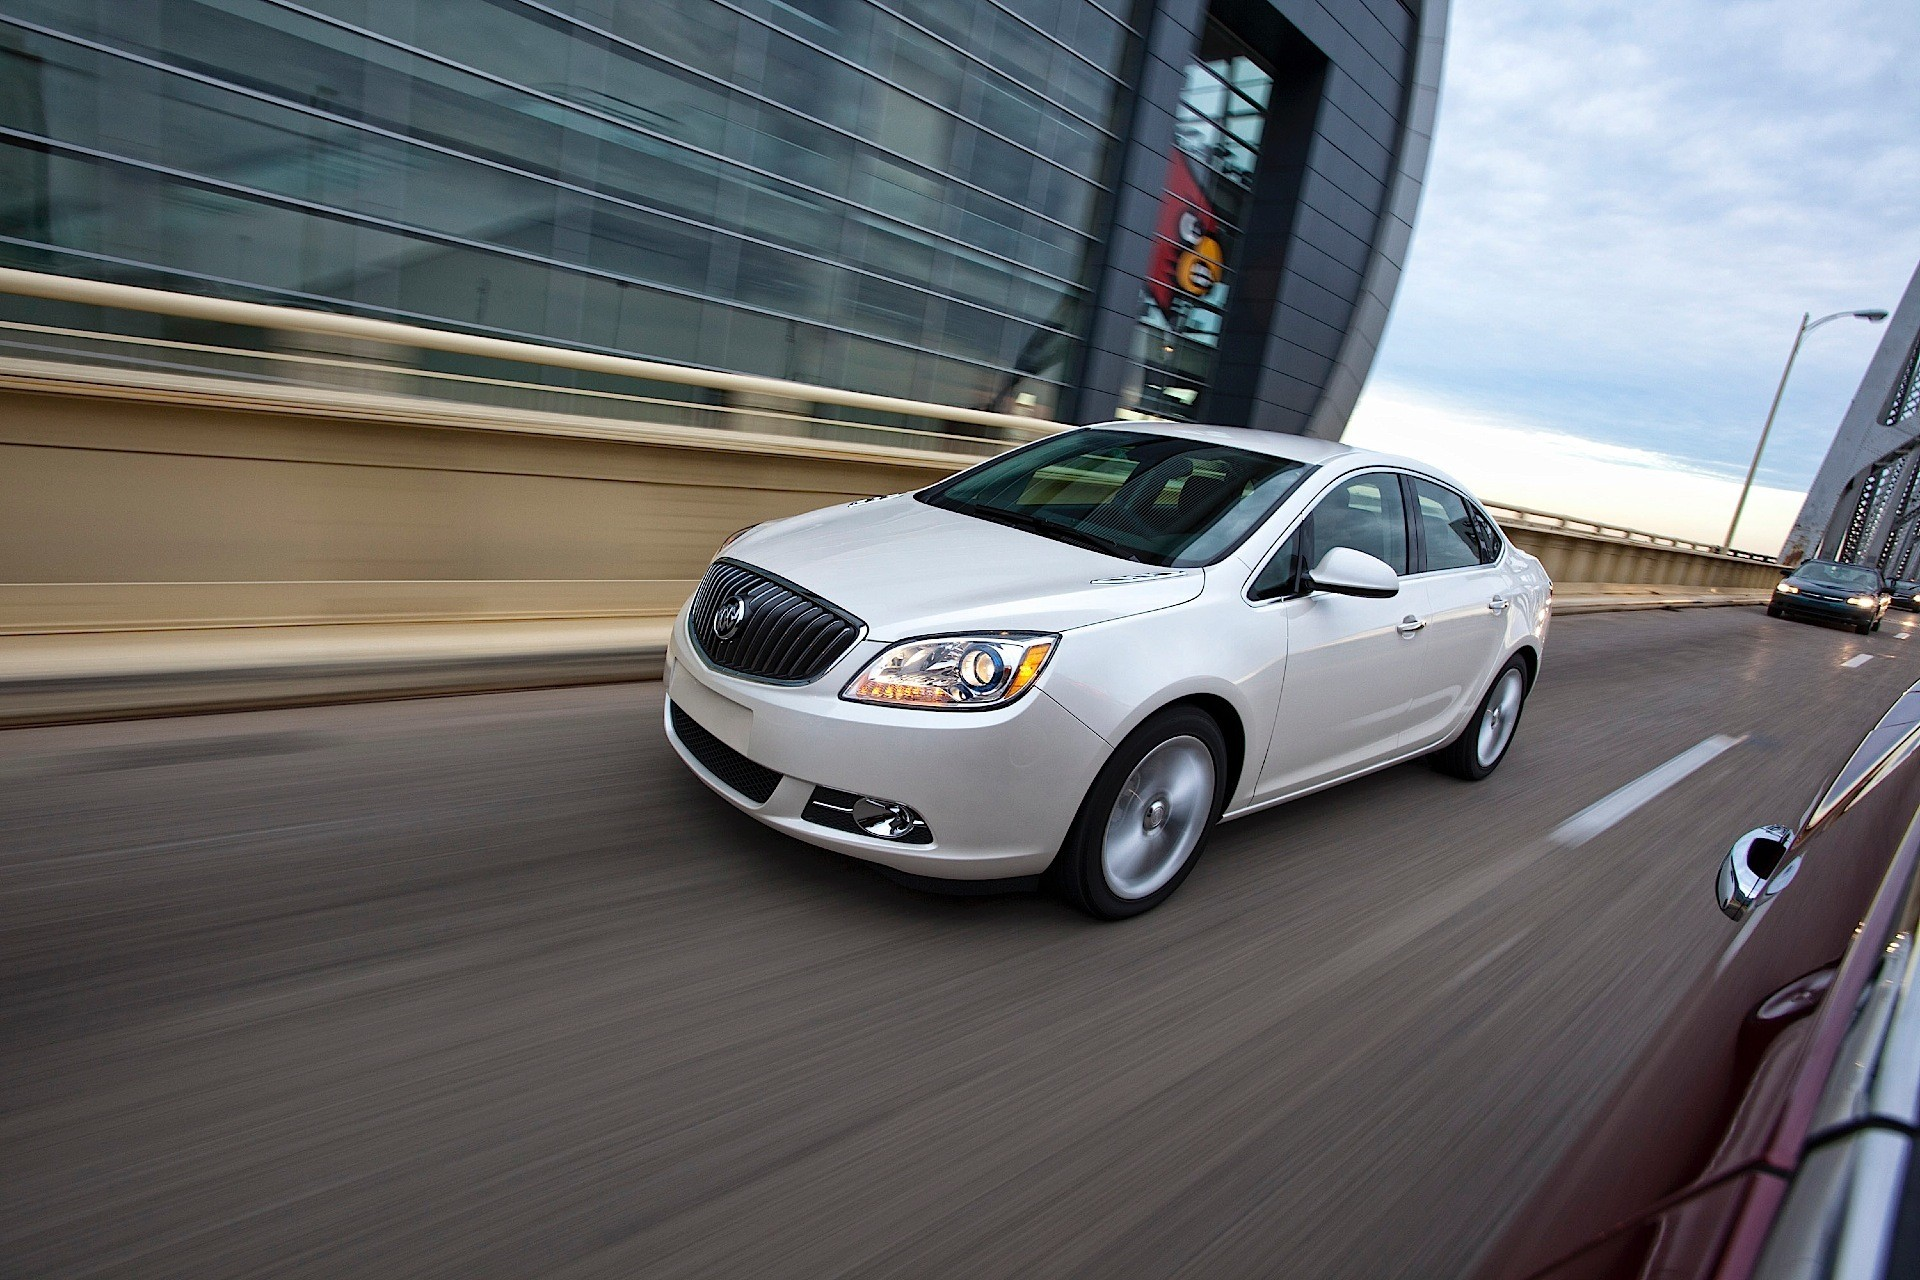 china cars data excelle sales car gt auto buick figures